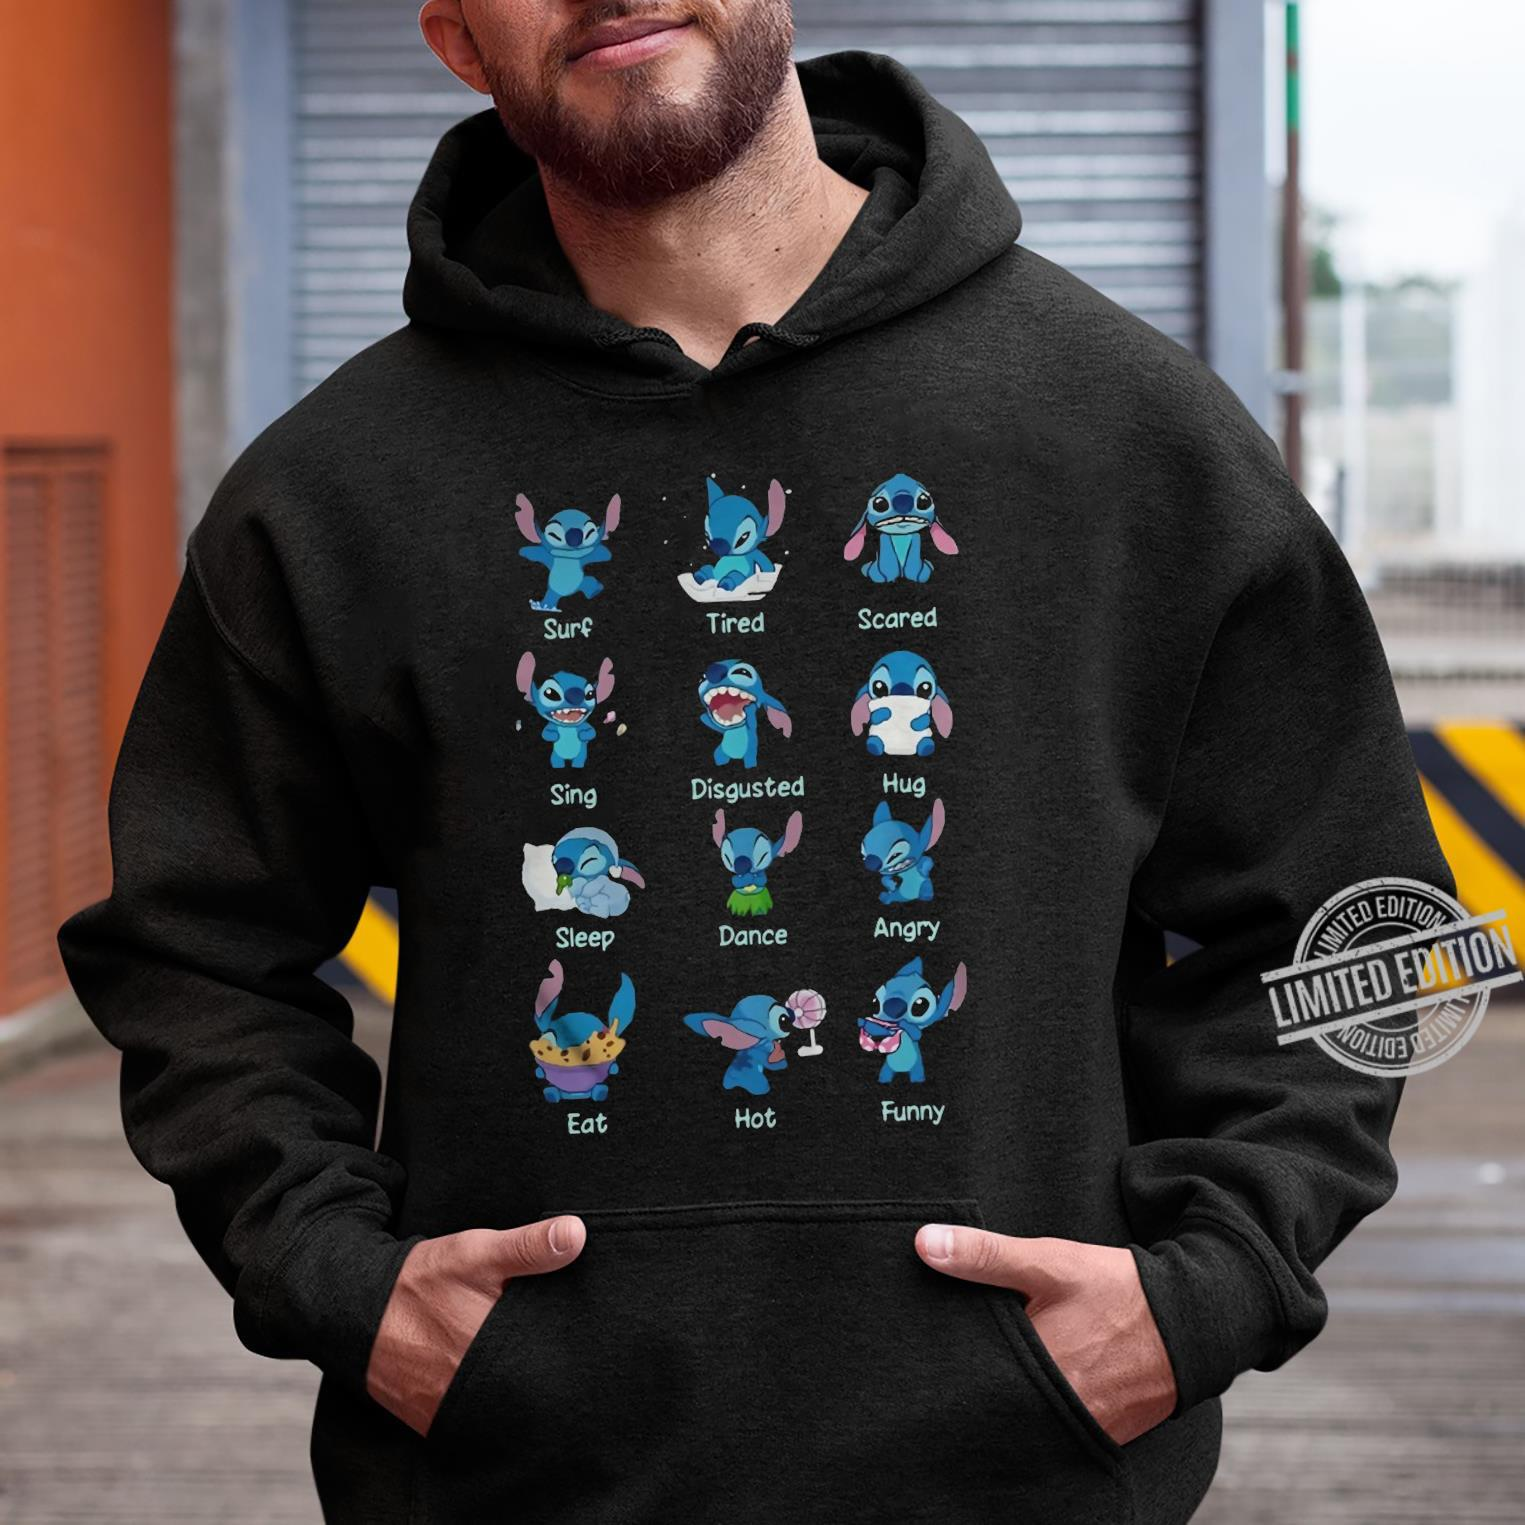 Stitch Surf Tired Scared Sing Disgusted Hug Sleep Dance Angry Eat Hot Funny Shirt hoodie